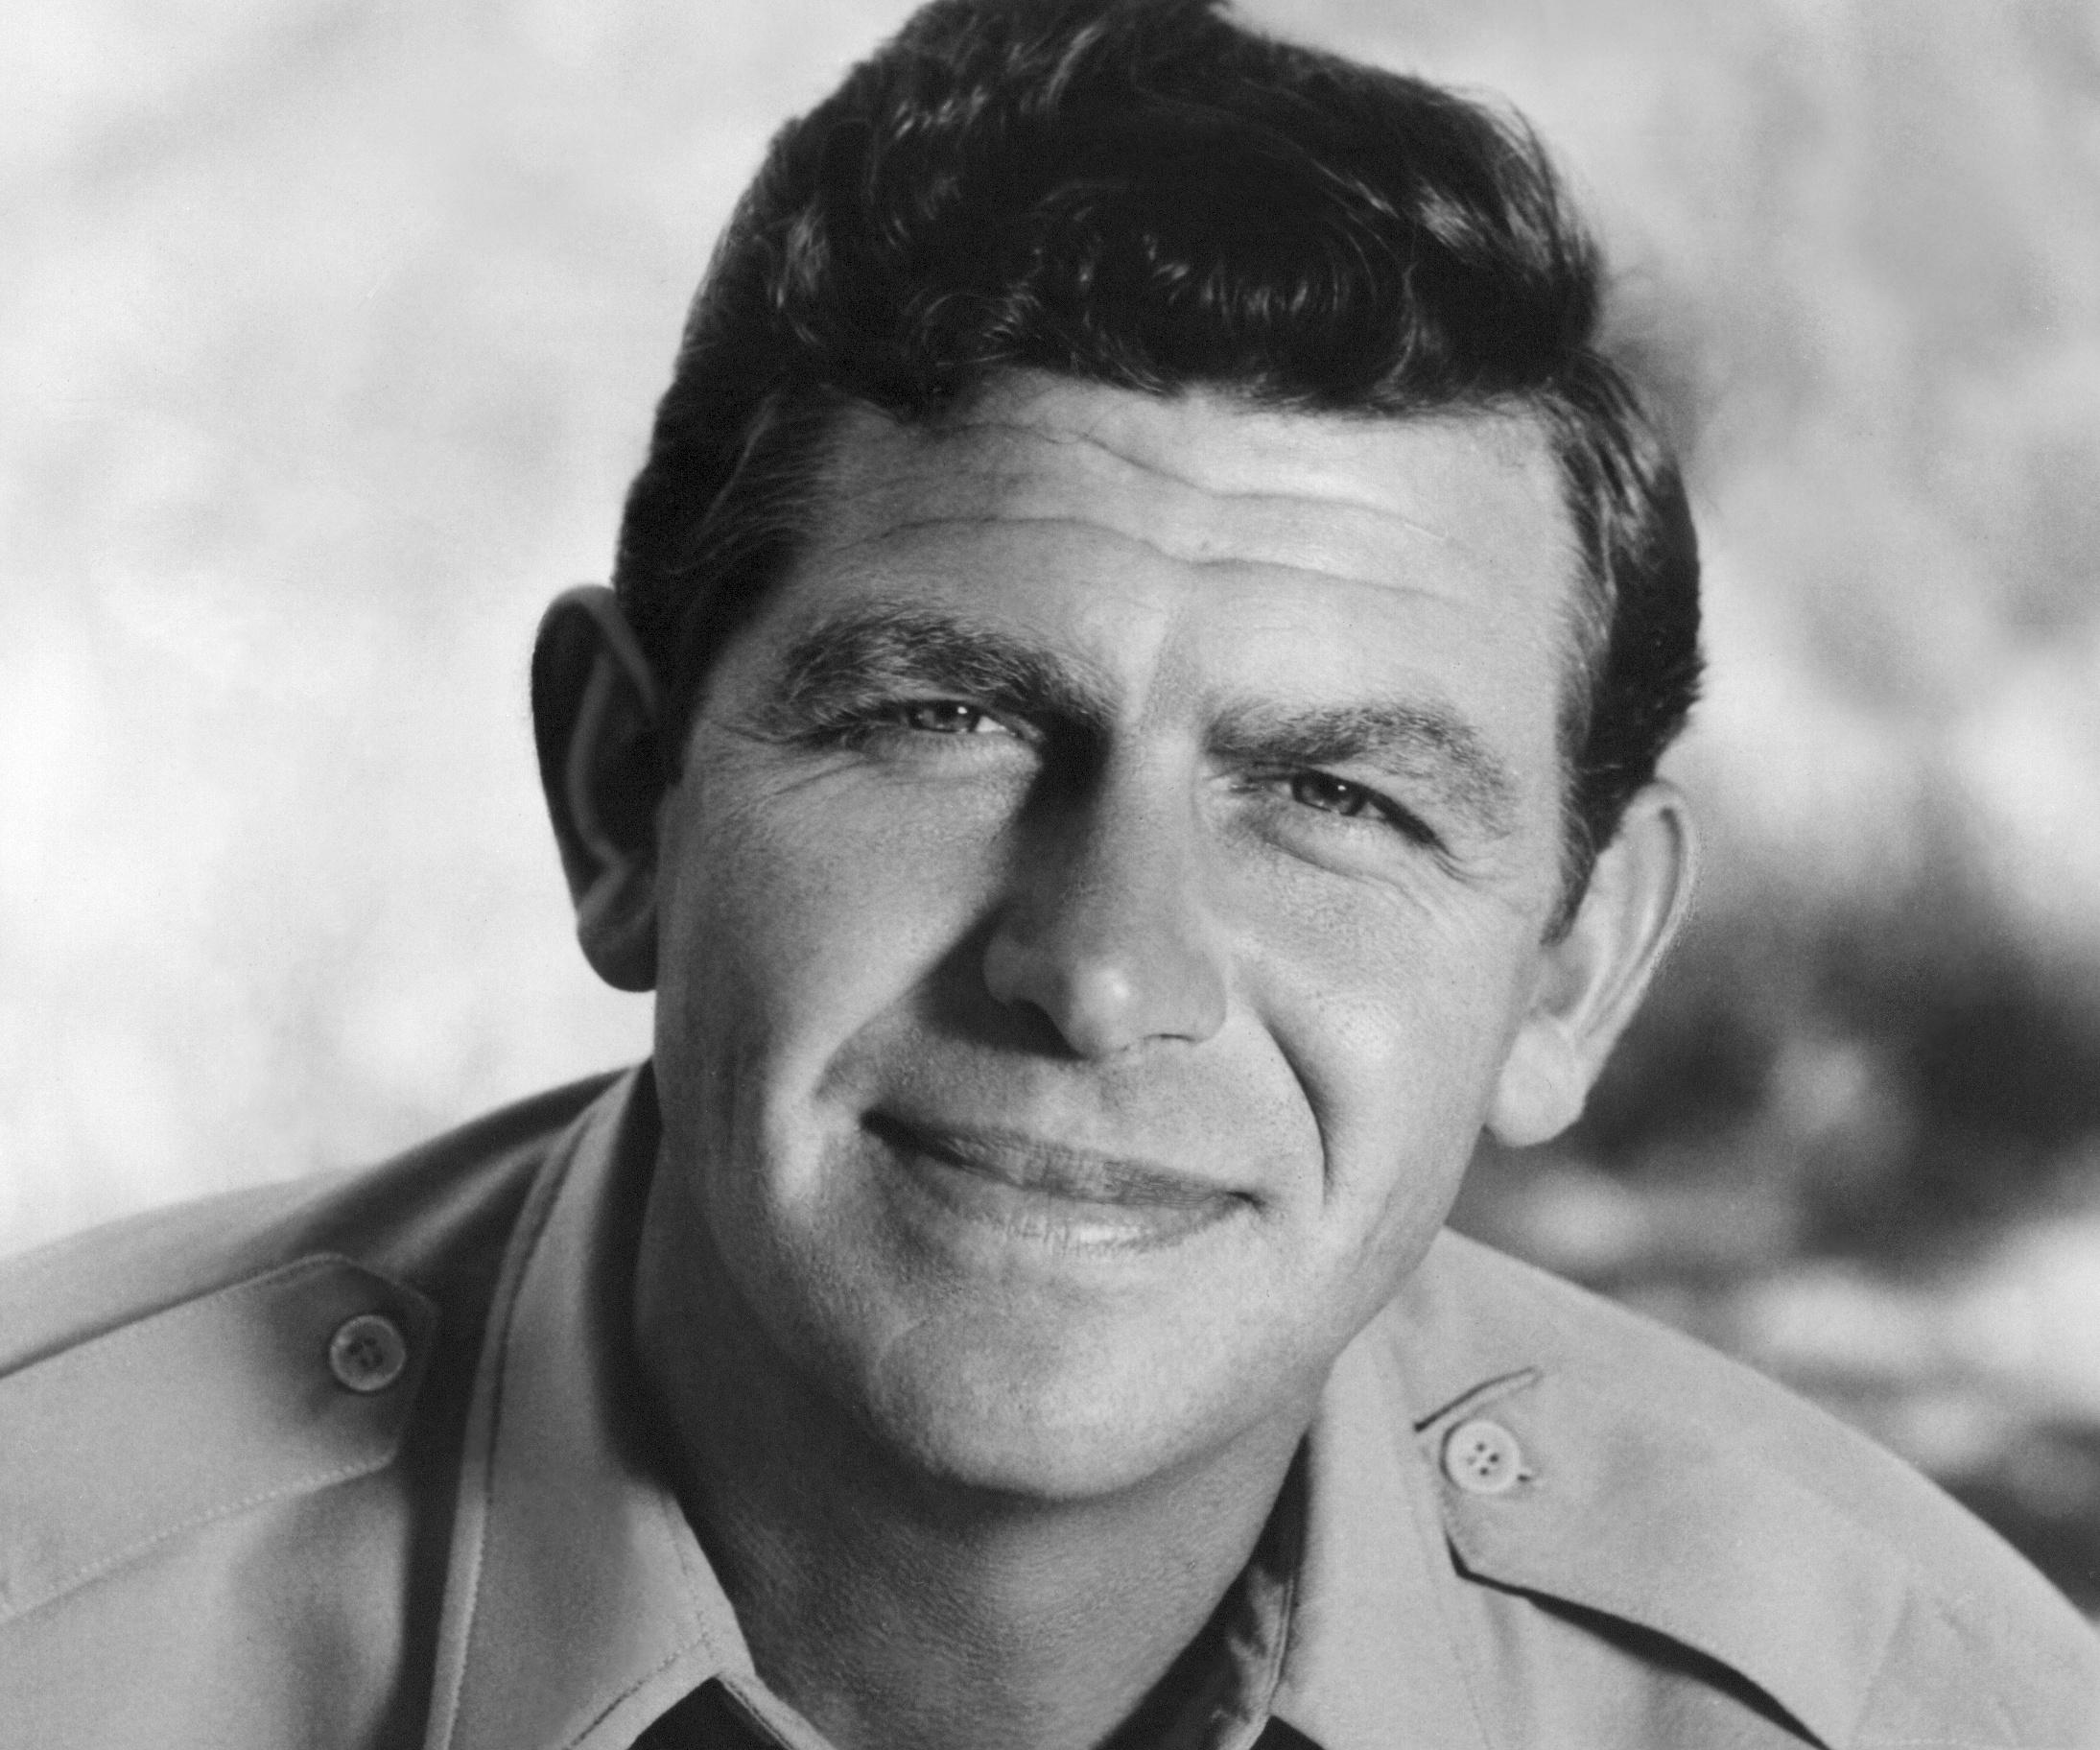 andy griffith Beginning in september 1960, griffith starred as sheriff andy taylor in the andy griffith show for the cbs television networkthe show took place in the fictional town of mayberry, north carolina, where taylor, a widower, was the sheriff and town sagethe show was filmed at desilu studios, with exteriors filmed at forty acres in culver city, california.